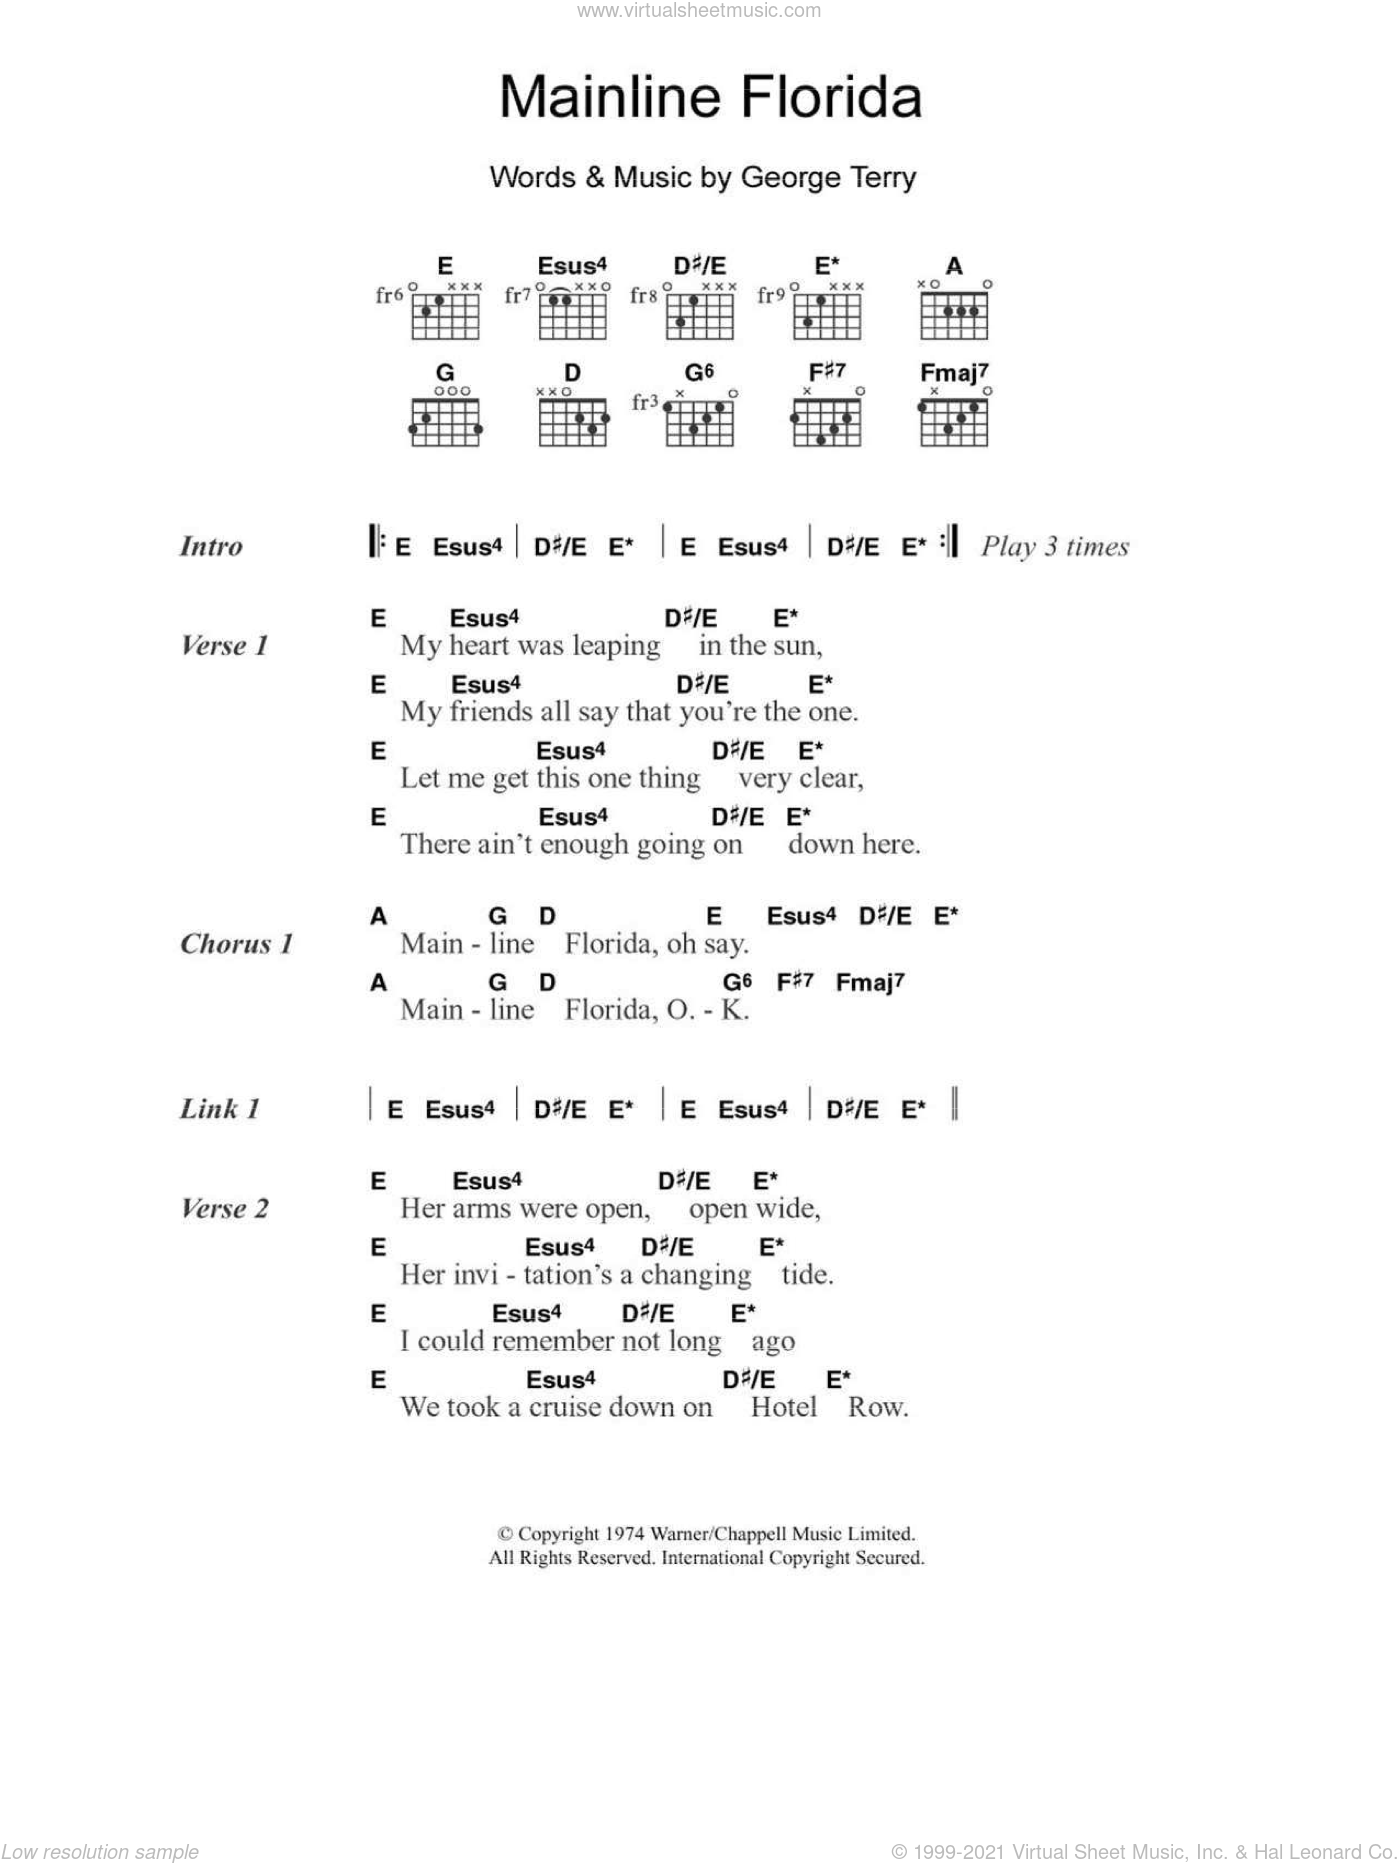 Mainline Florida sheet music for guitar (chords) by George Terry